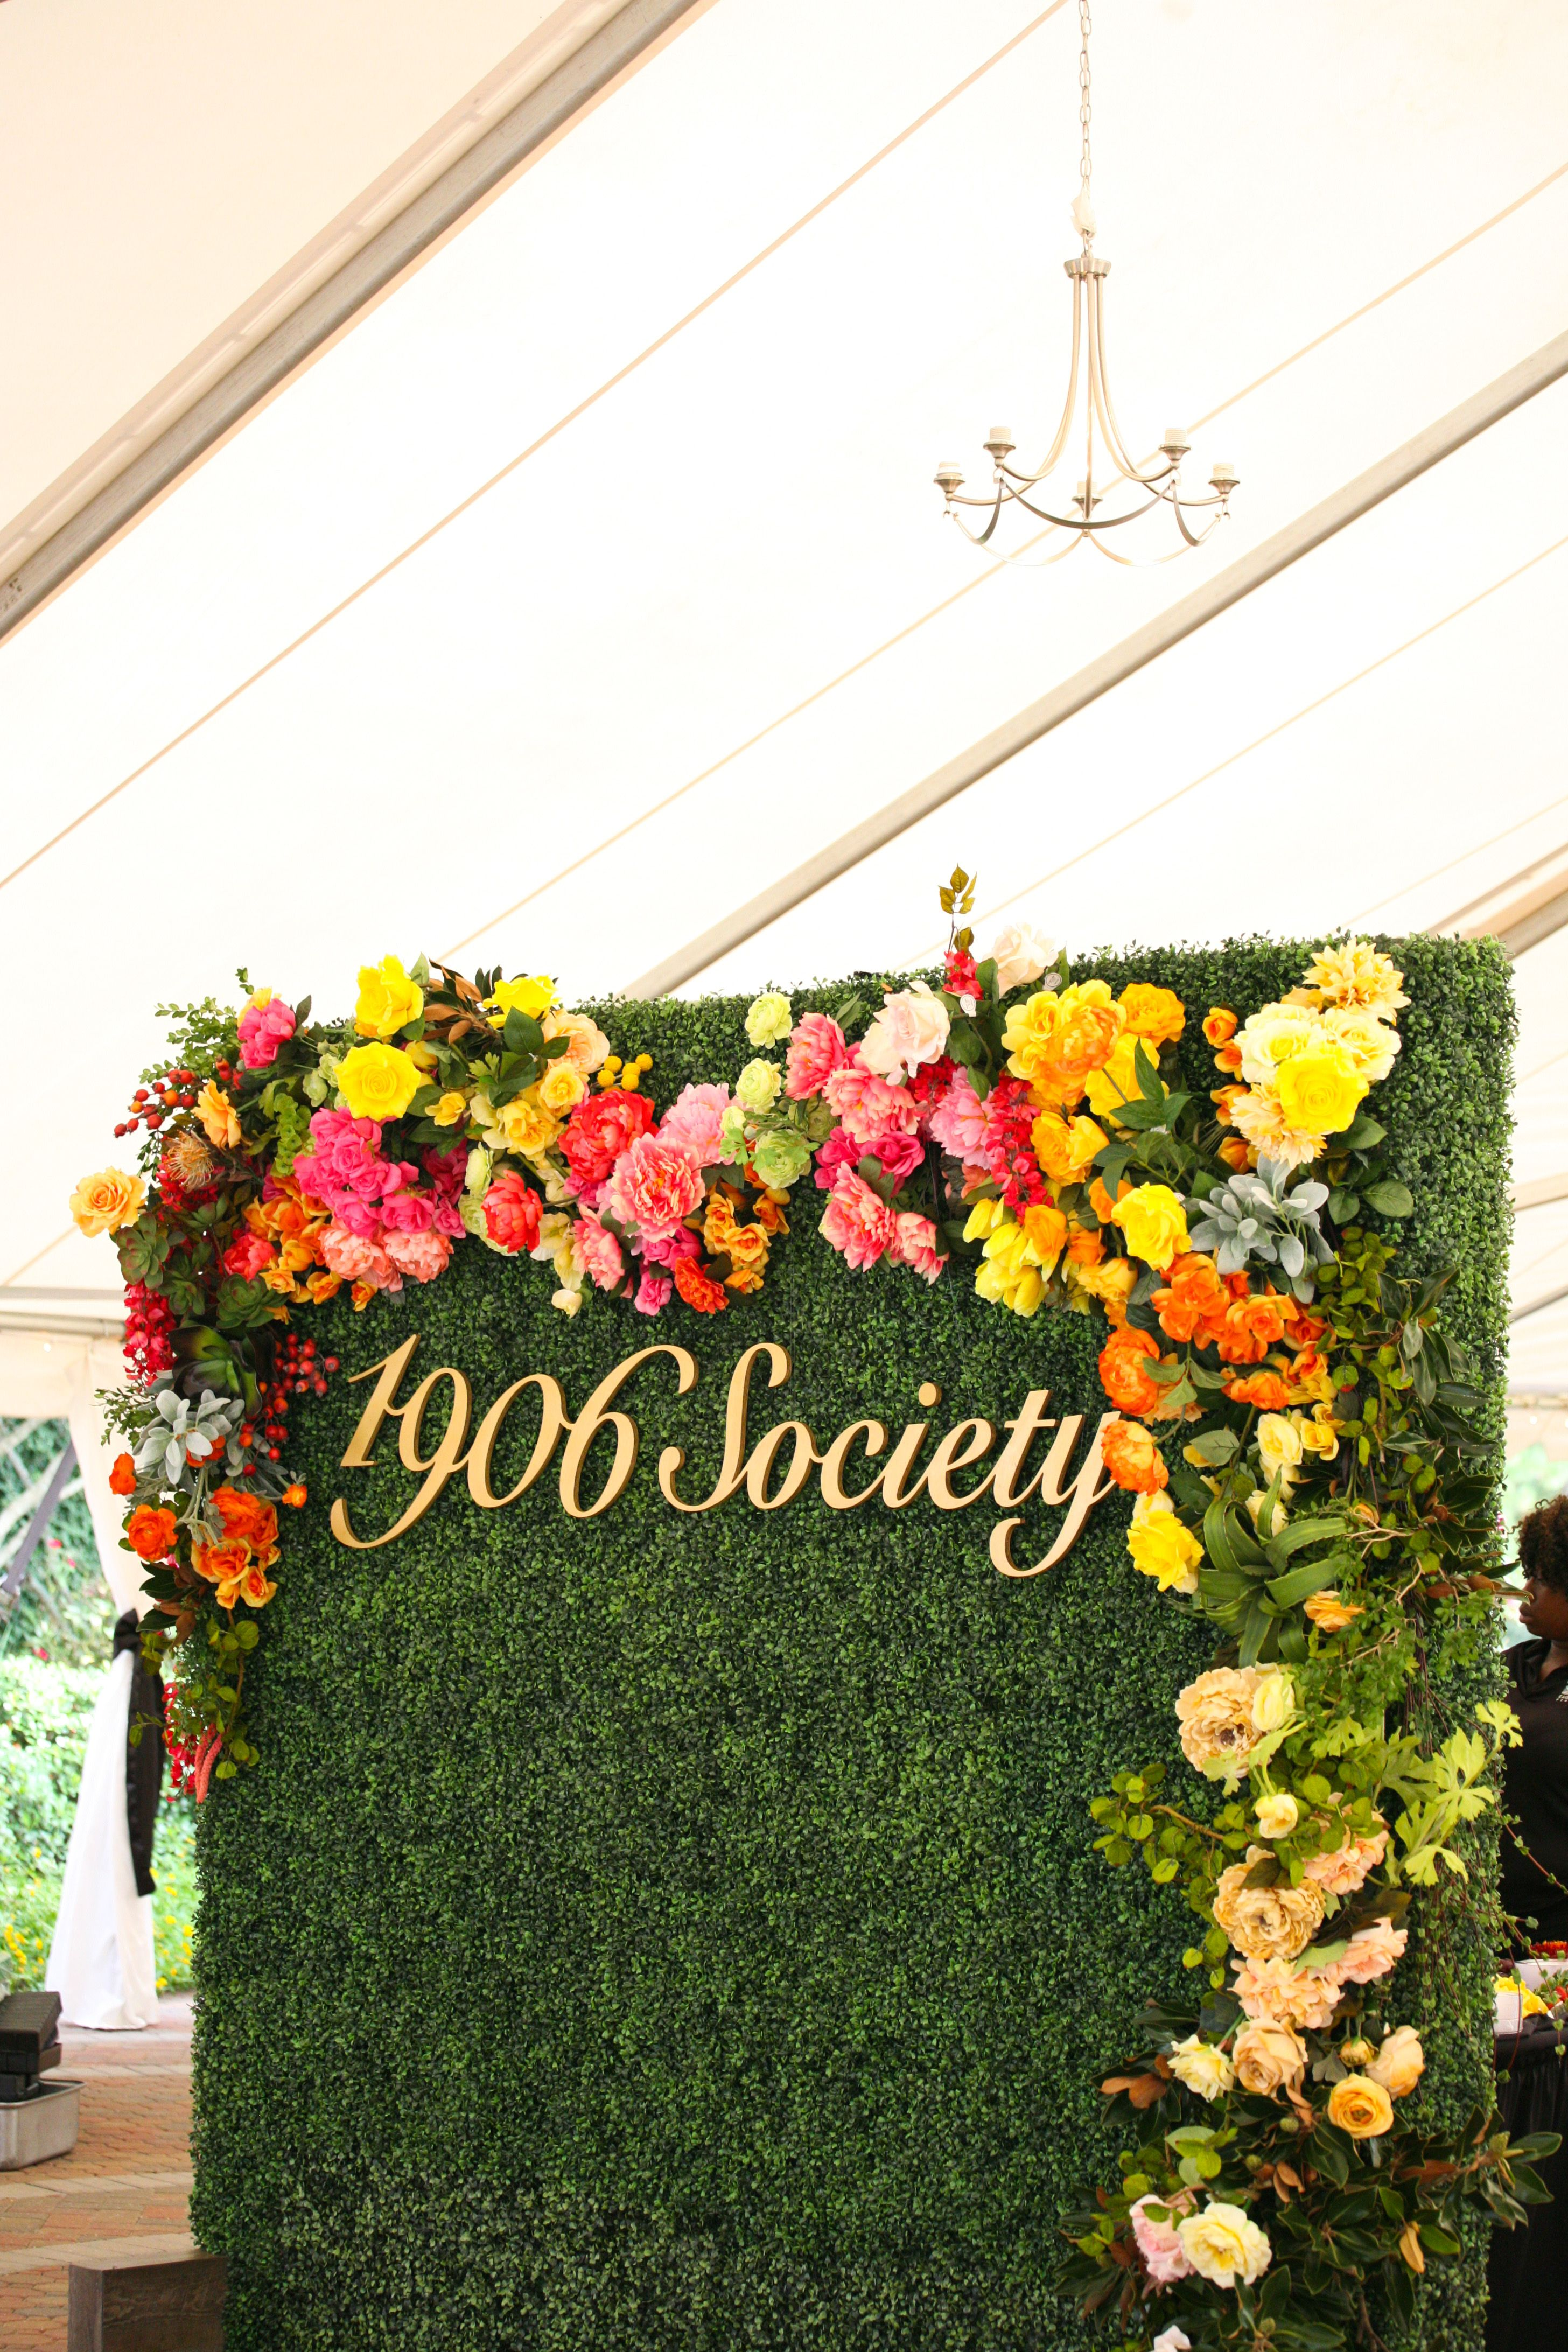 Colorful Flower Wall Rental By Colonial House Of Flowers Photo By Foldsphotograph Savannah Georgia Wedding Backdrop Flower Wall Rental Grass Backdrops